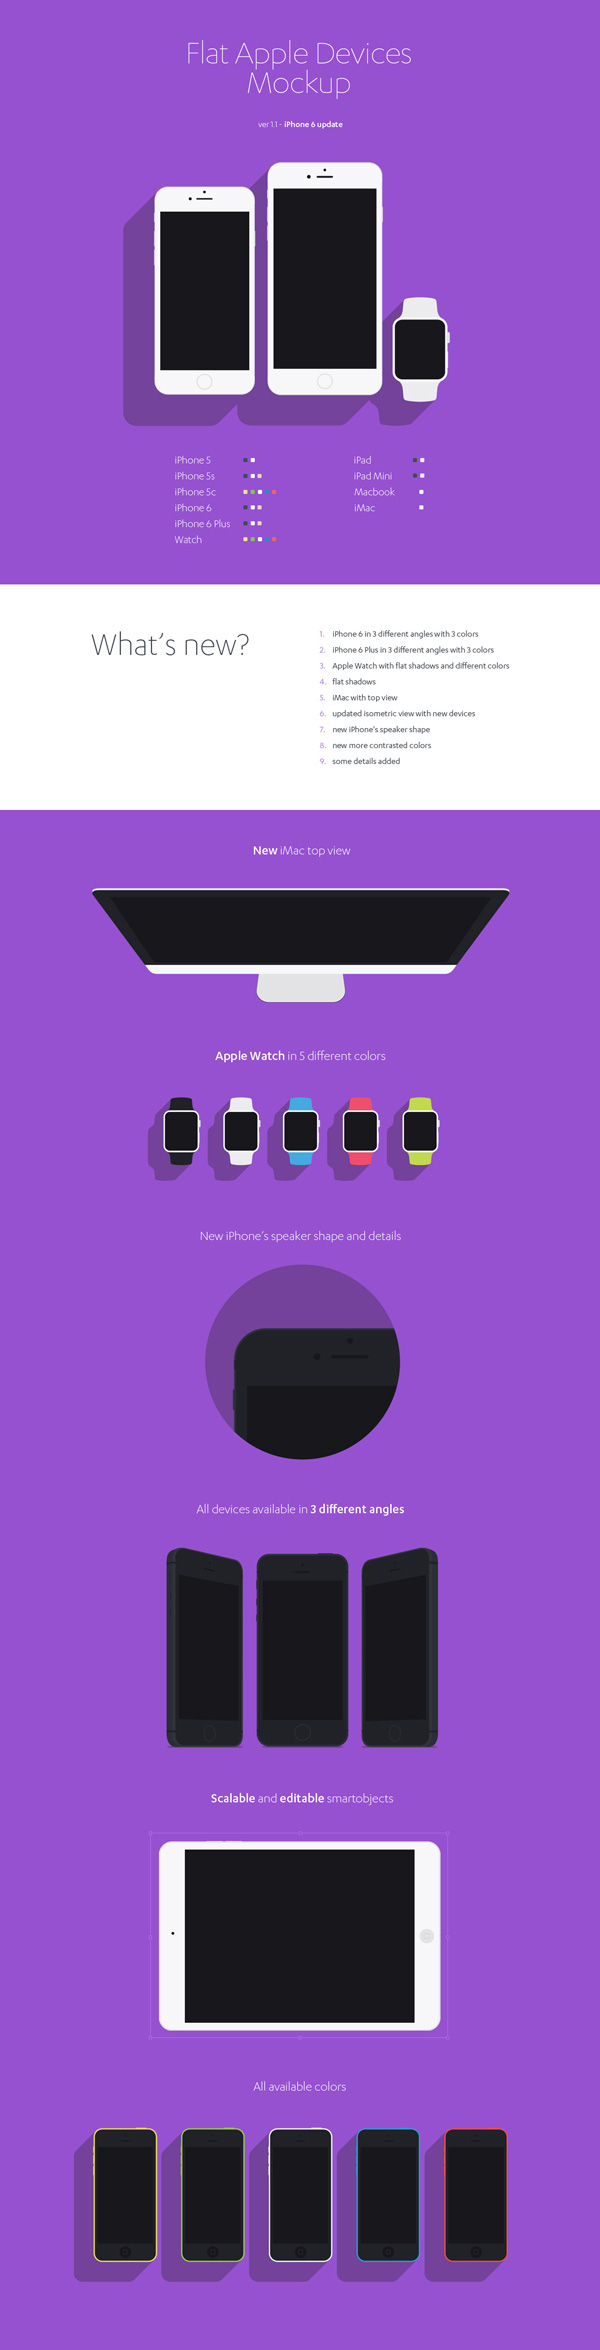 2.Flat Apple Devices Mockup